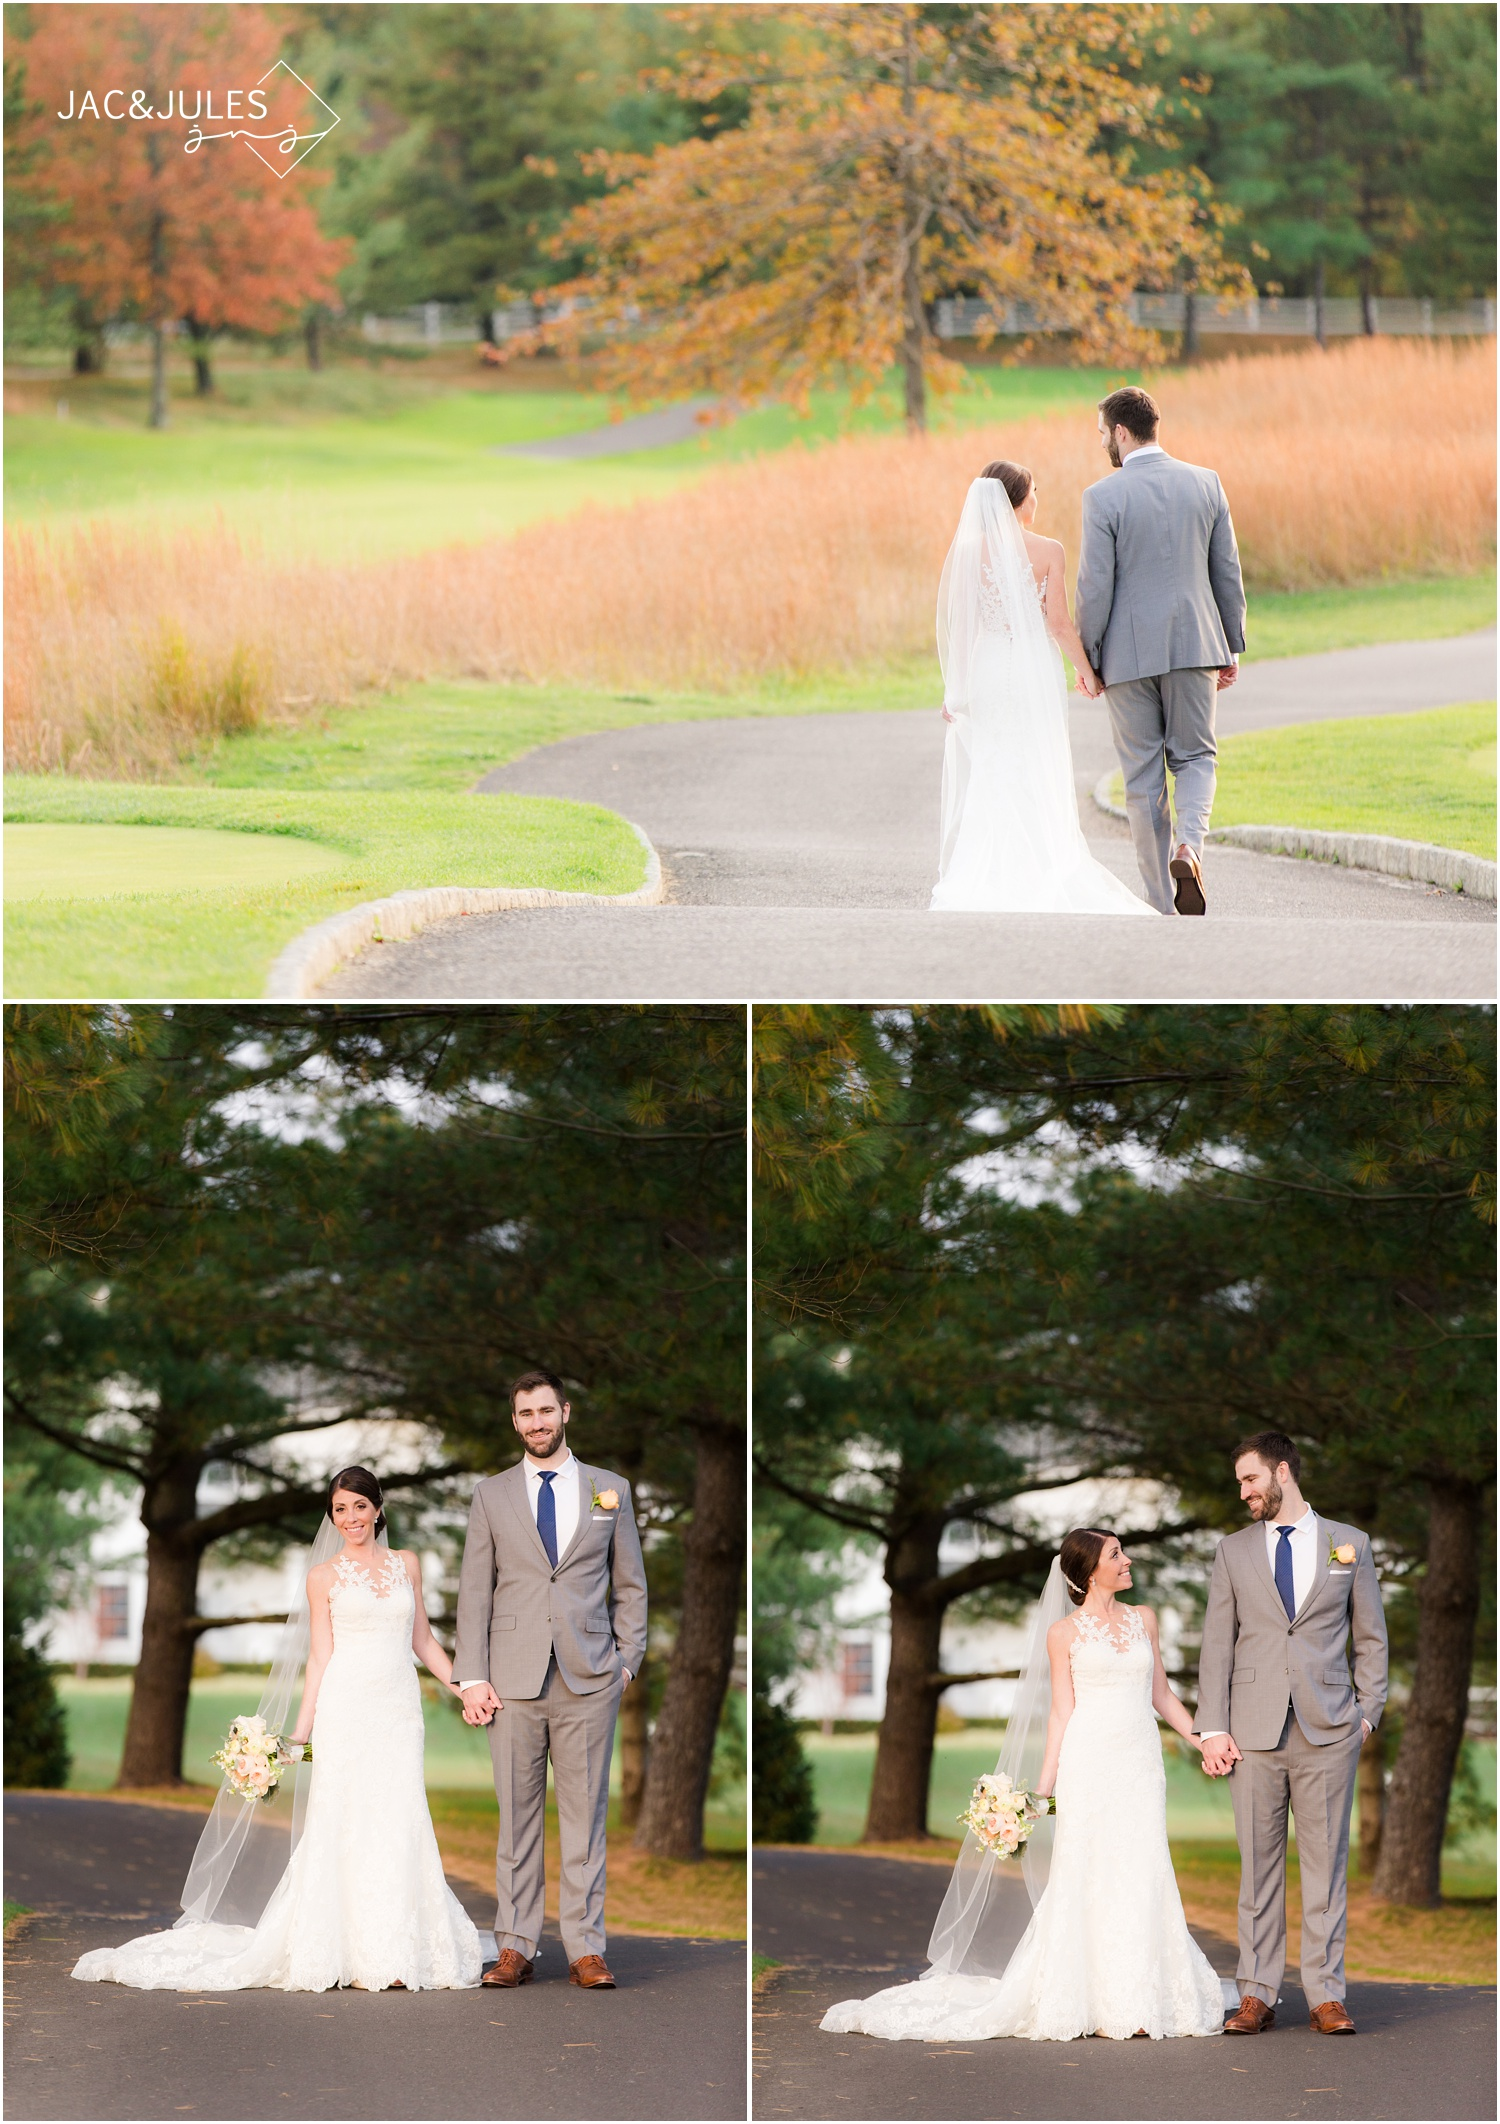 Bride and groom walking in path at Eagle Oaks Golf and Country Club in Farmingdale, NJ.